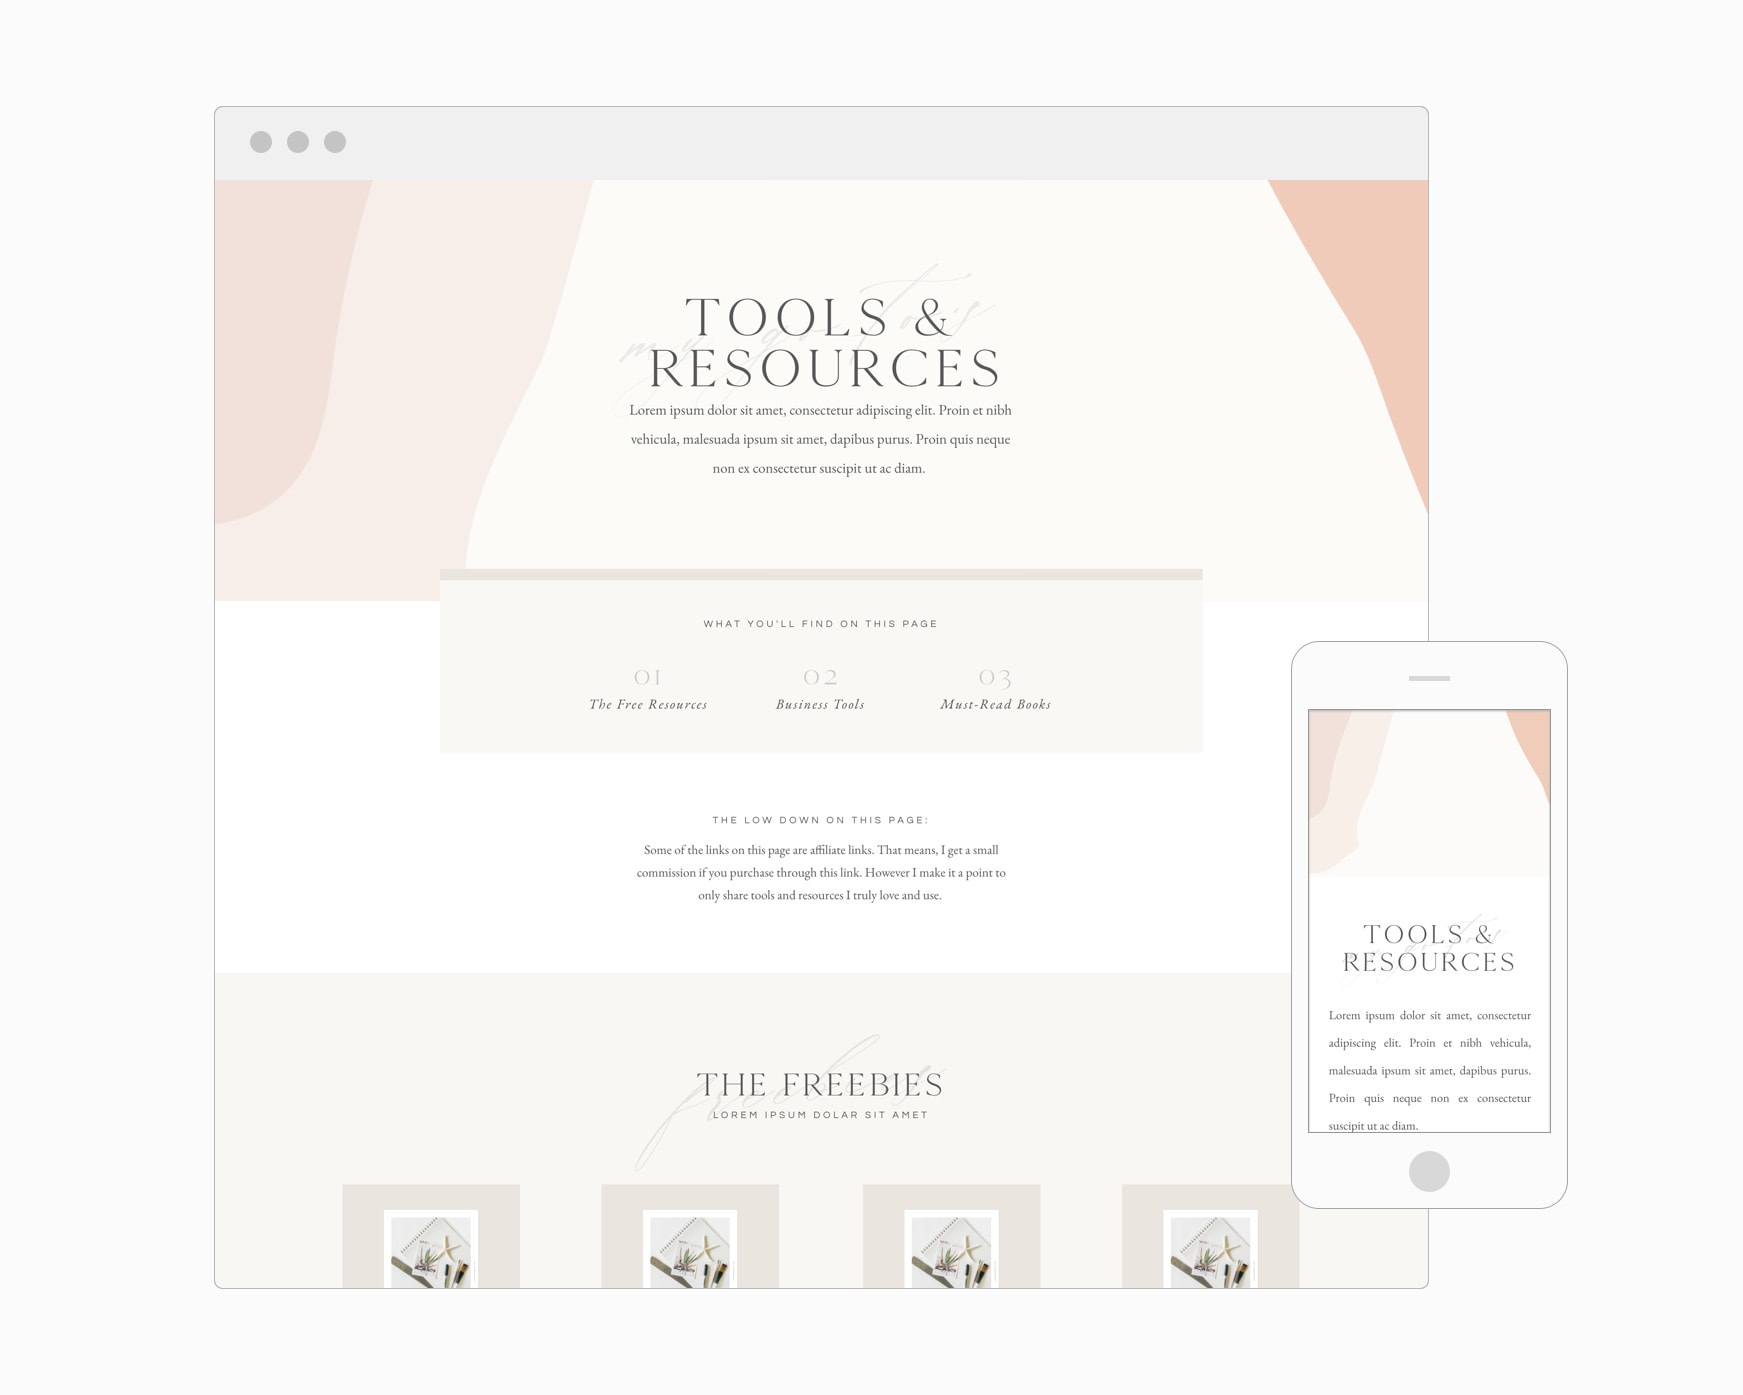 Tools & Resources Page (WordPress)